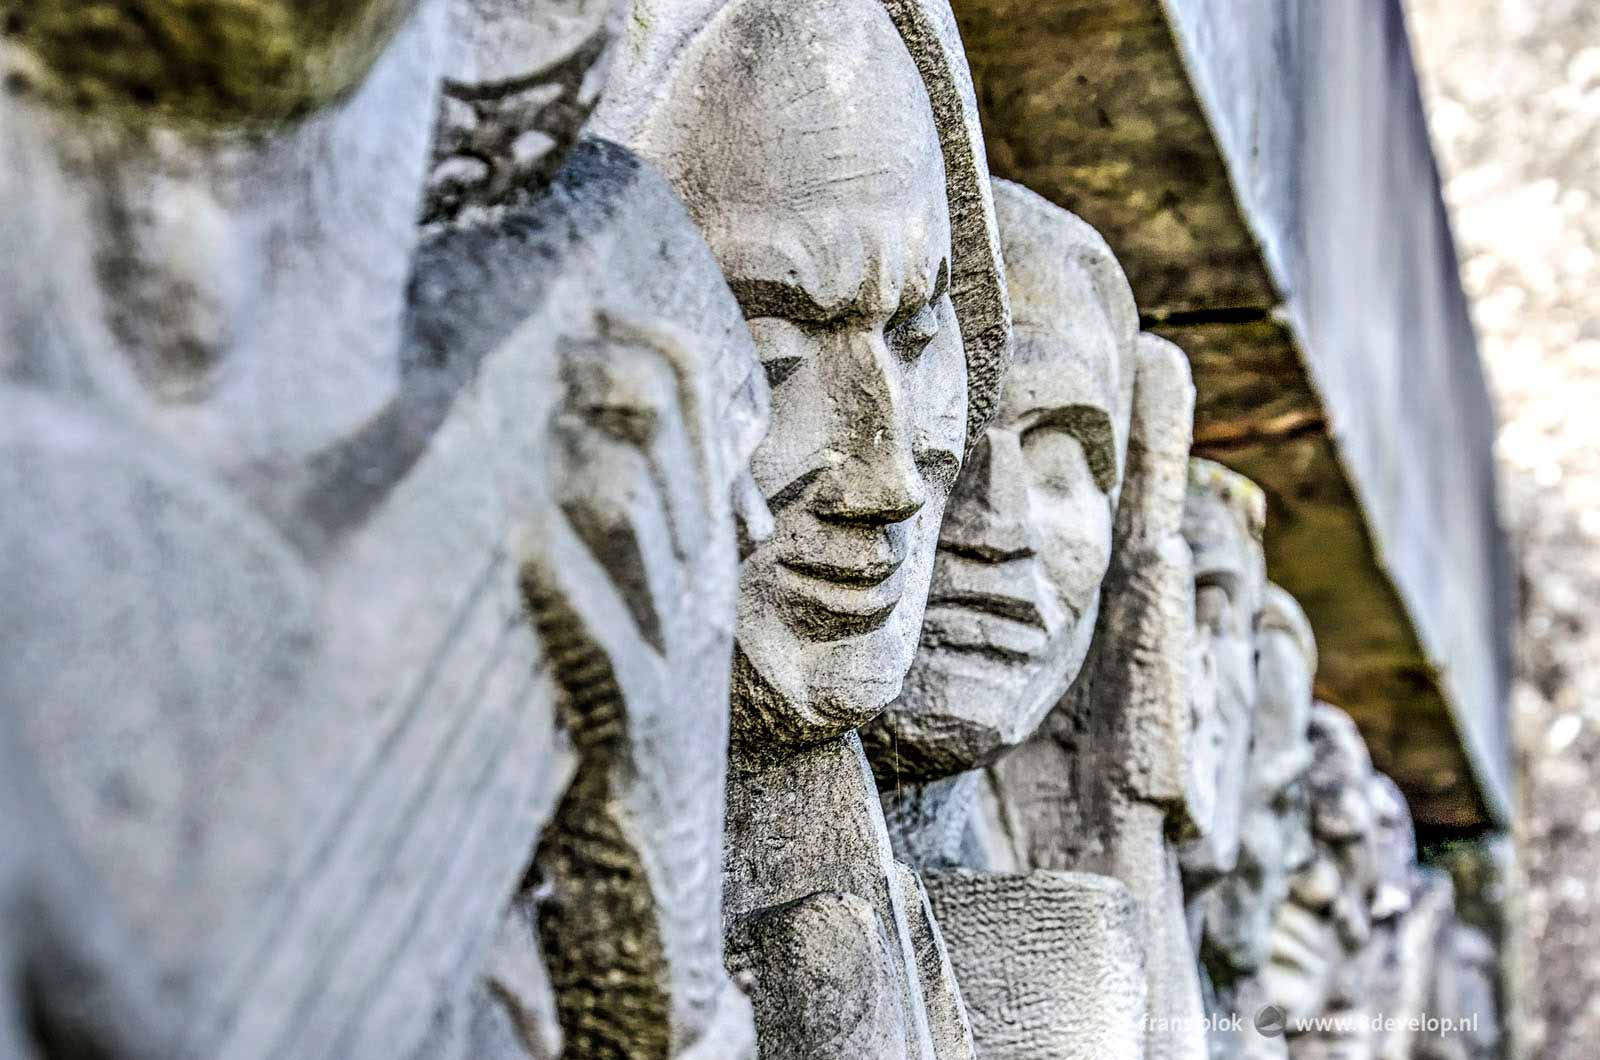 Close-up of the facade sculpture of the old Bijenkorf store in Rotterdam, made by sculptor Hendrik van den Eijnde: a striking resemblance with Mount Rushmore